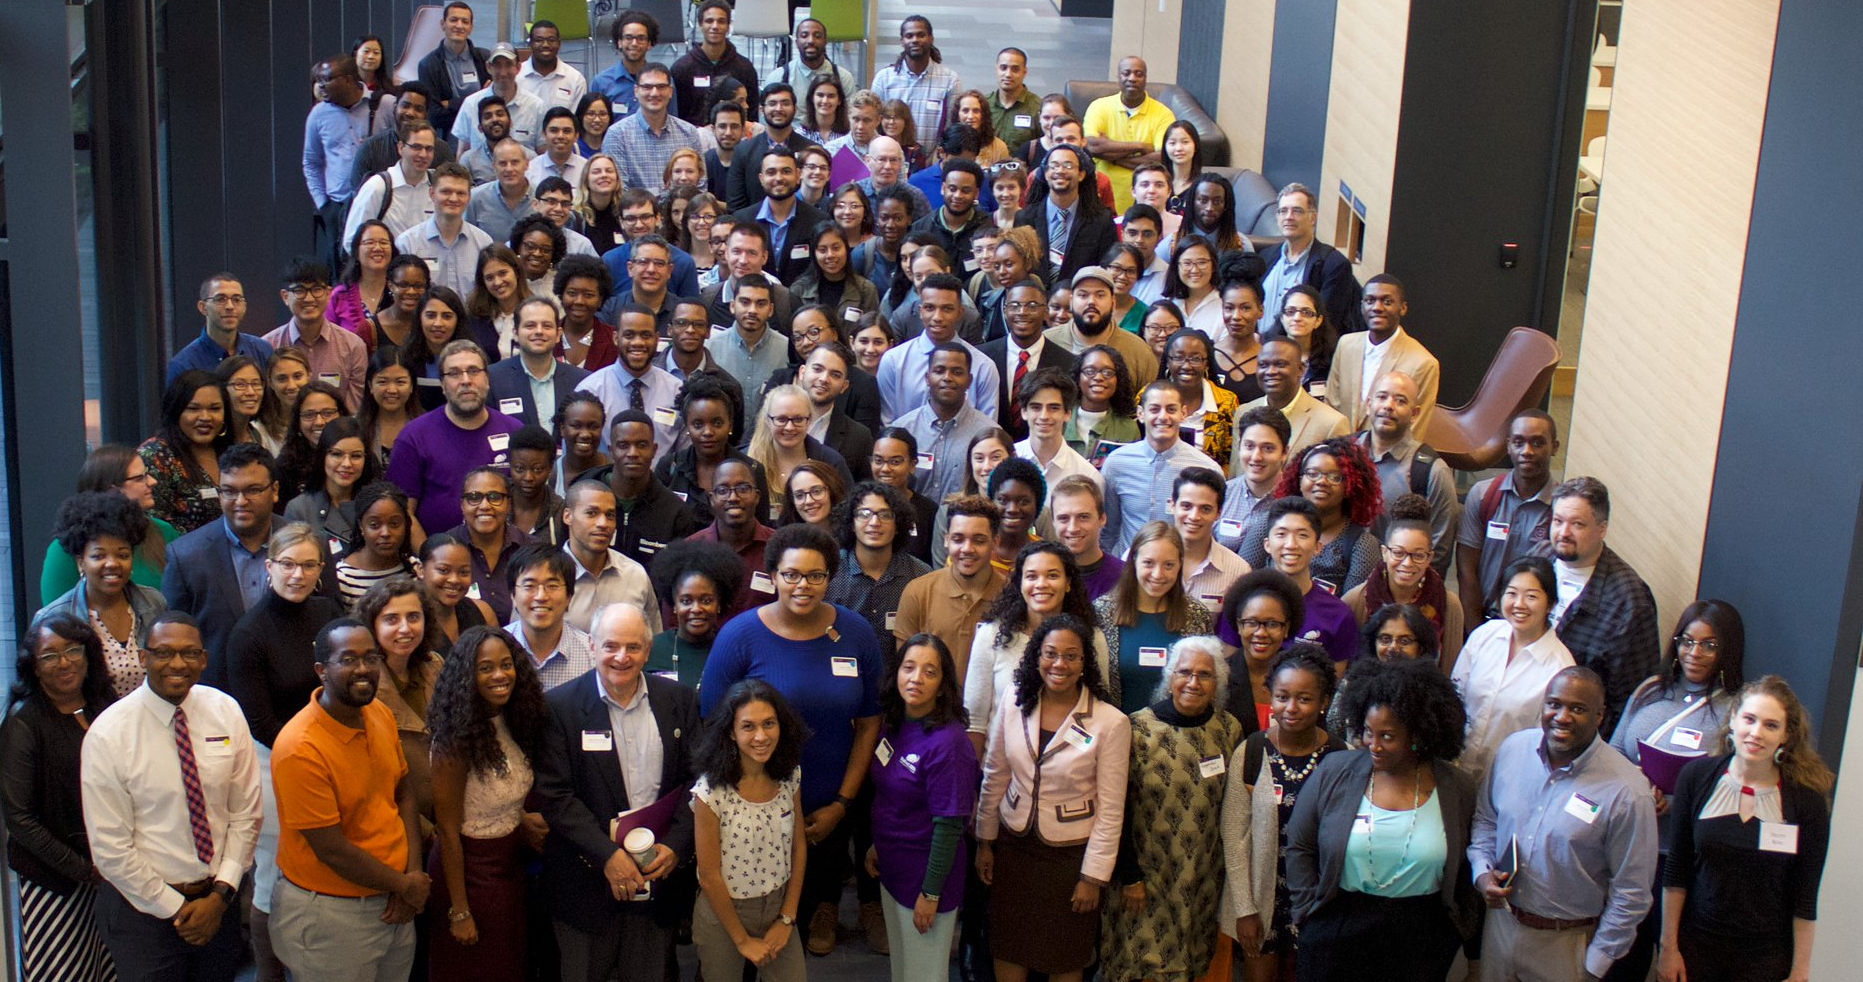 StatFest 2018  attendees. This conference aims to encourage undergraduate students from historically underrepresented groups to consider careers and graduate studies in statistical science. It was a great event!